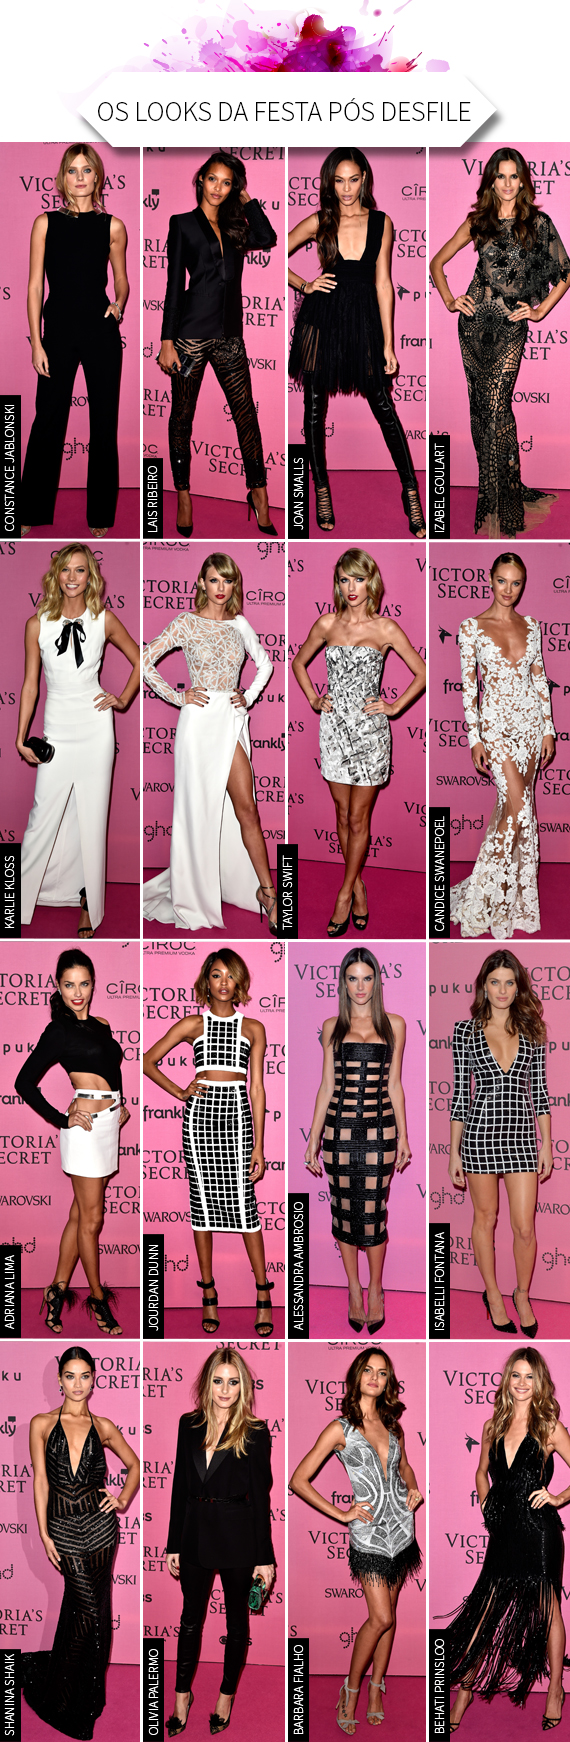 victorias-secret-looks-after-party